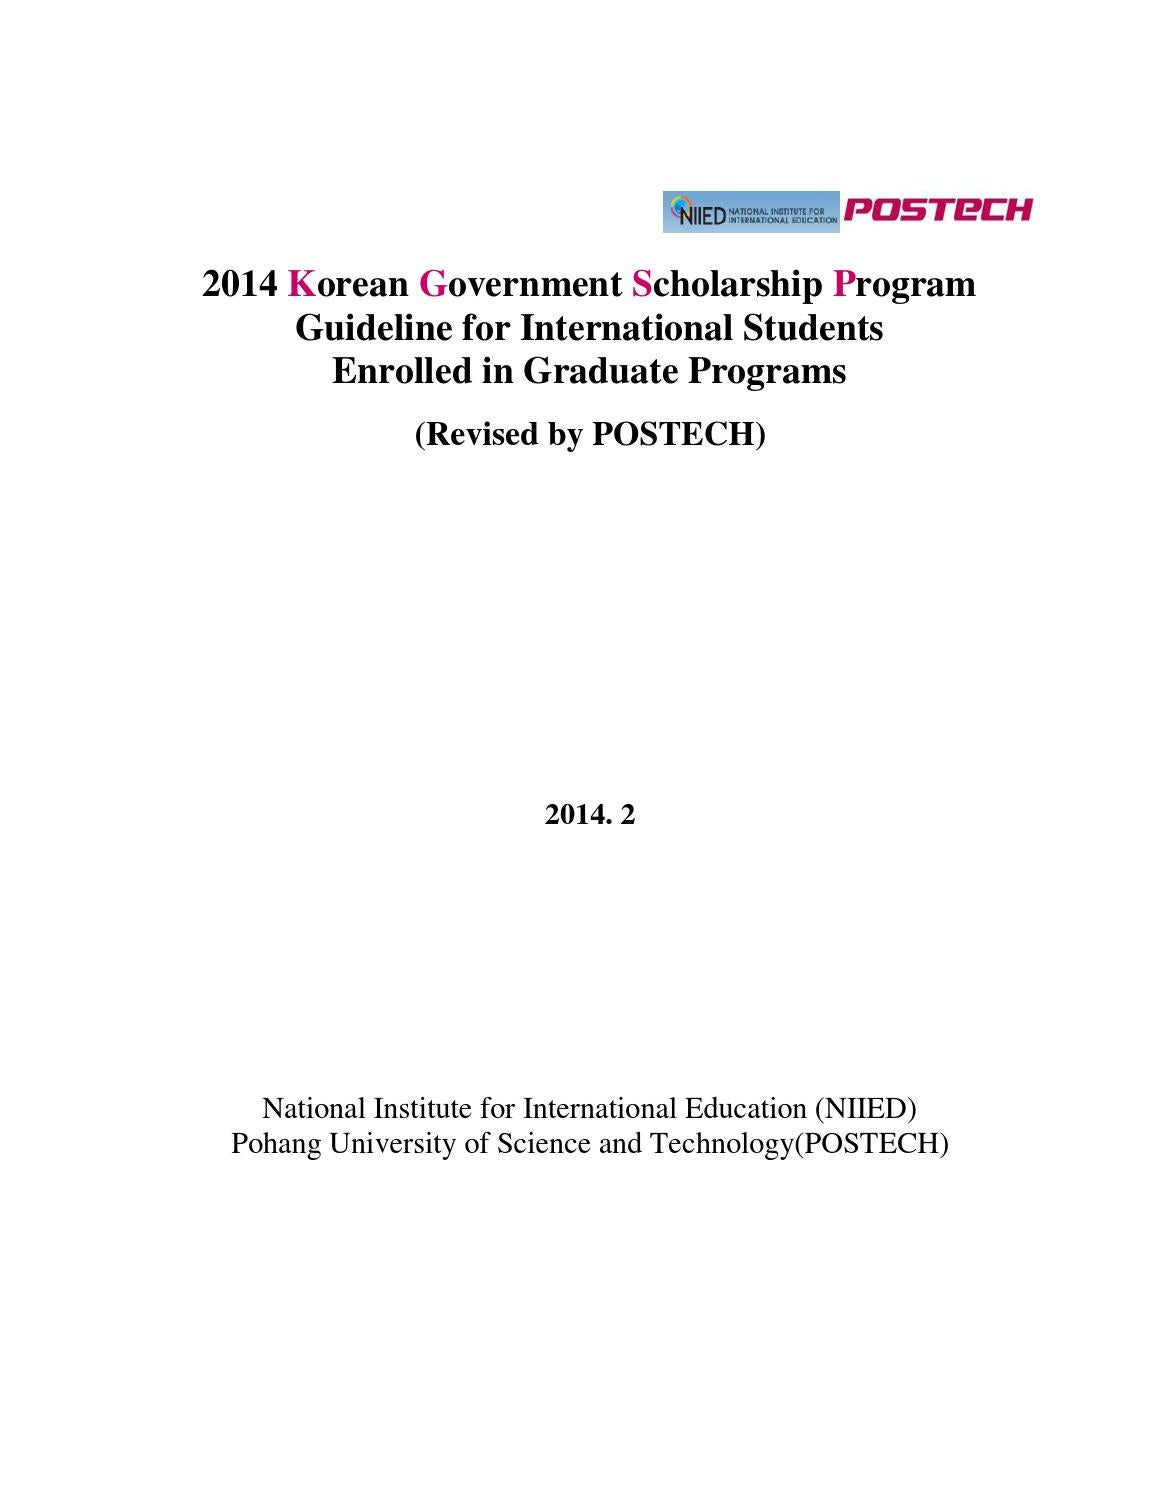 2014 gks graduate program guidelines by postech by Edu Line - issuu